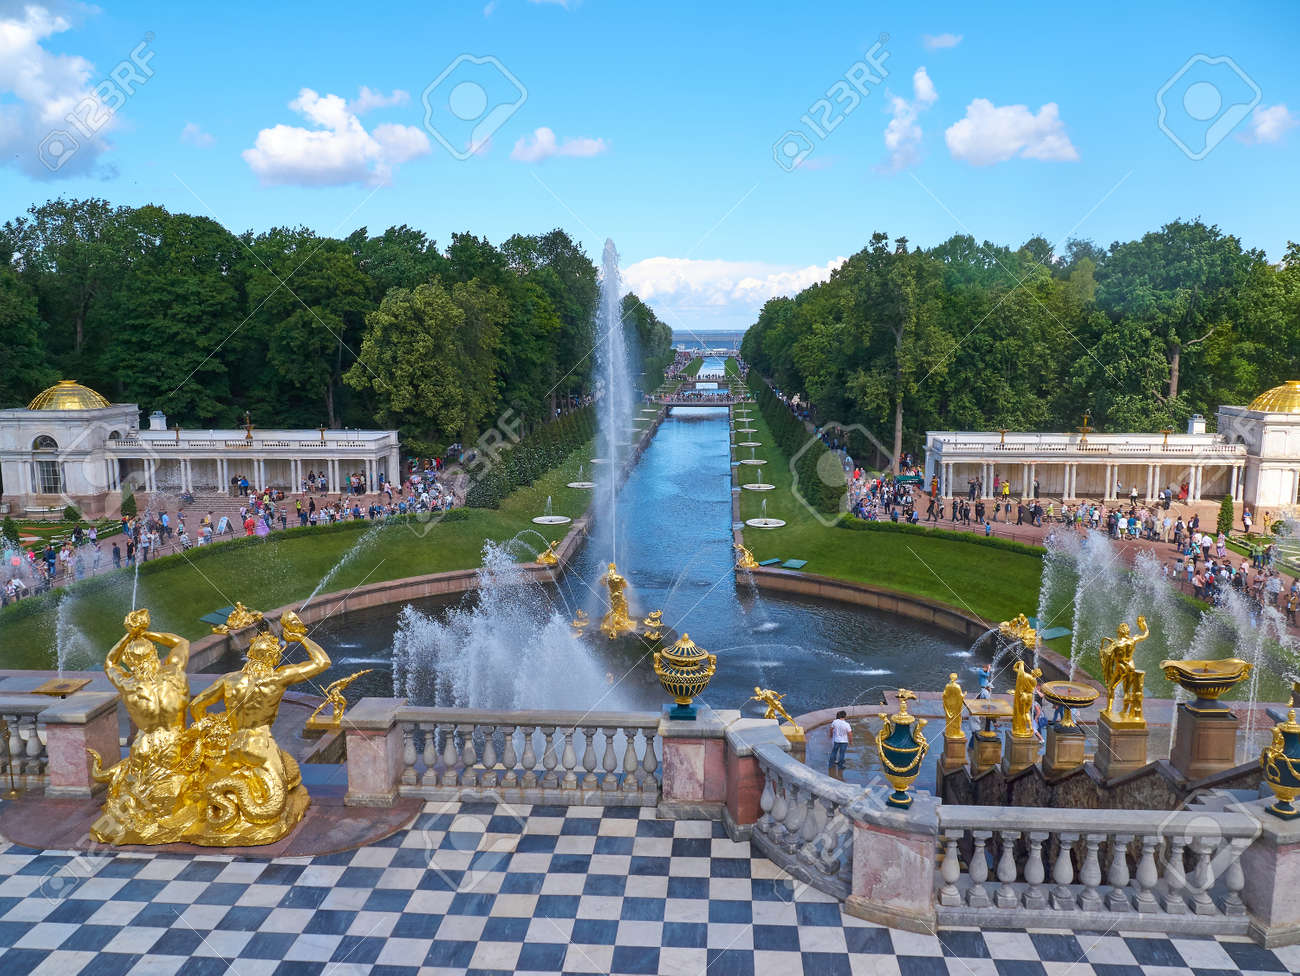 Peterhof, St  Petersburg, Russia - August 3, 2017: The Great